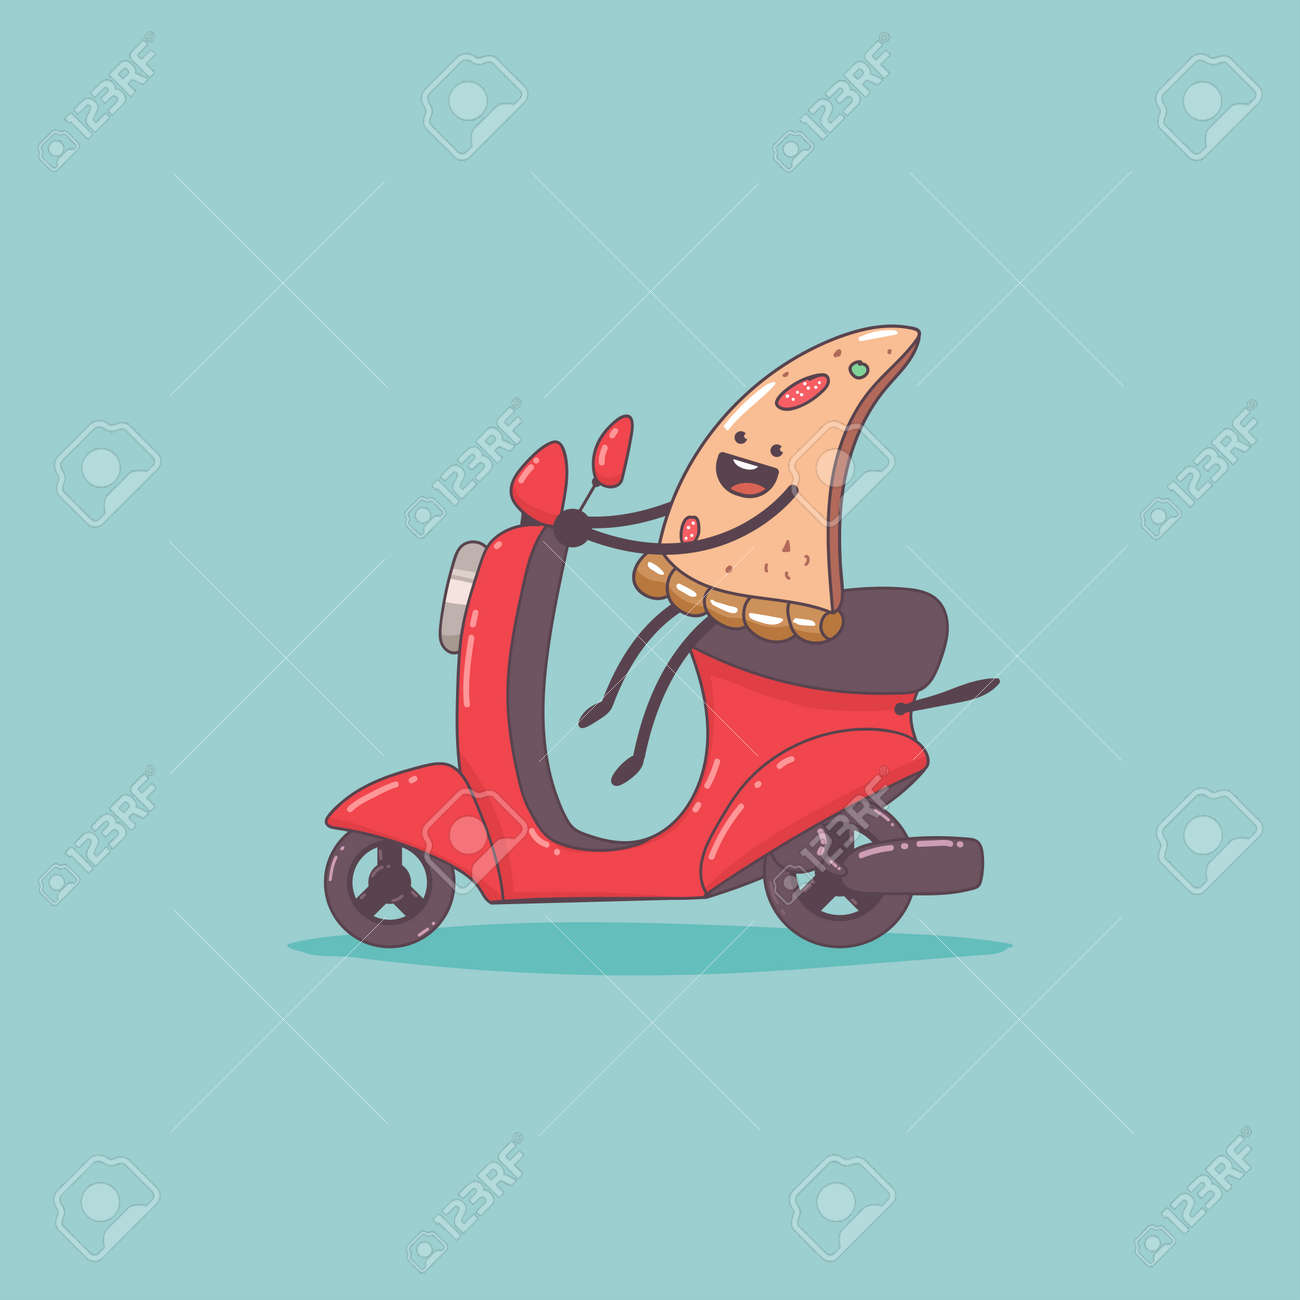 Pizza delivery. Cute food courier character on the moped. Vector cartoon cute illustration isolated on background. - 172749450